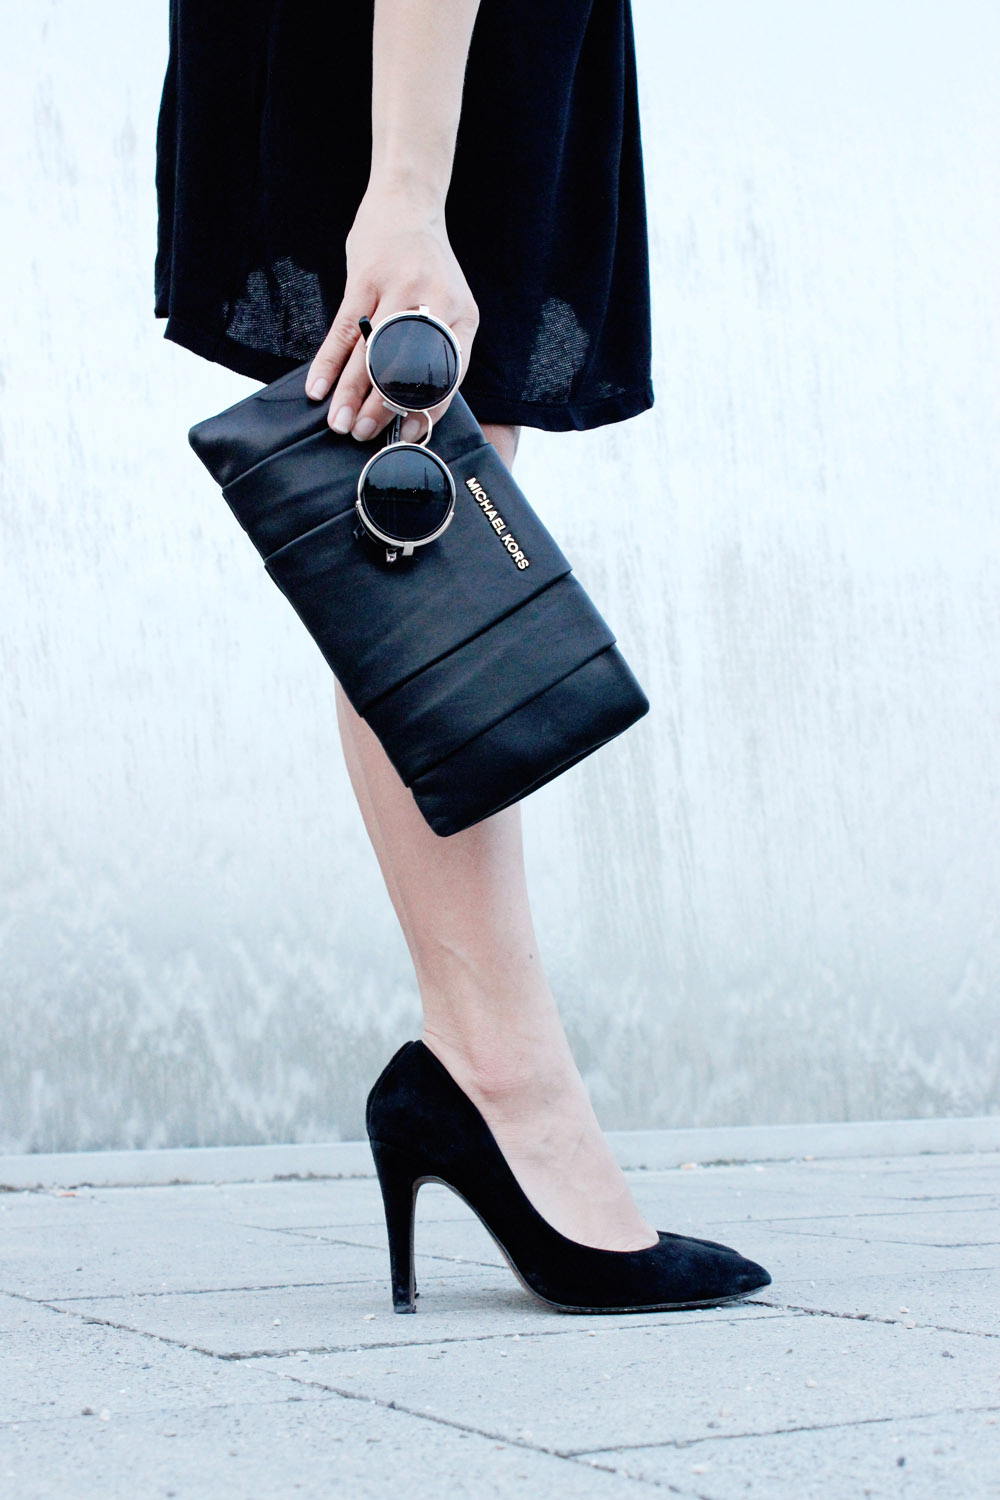 fatimayarie-michaelkors-black-leatherclutch-roundglasses-heels-img_5020